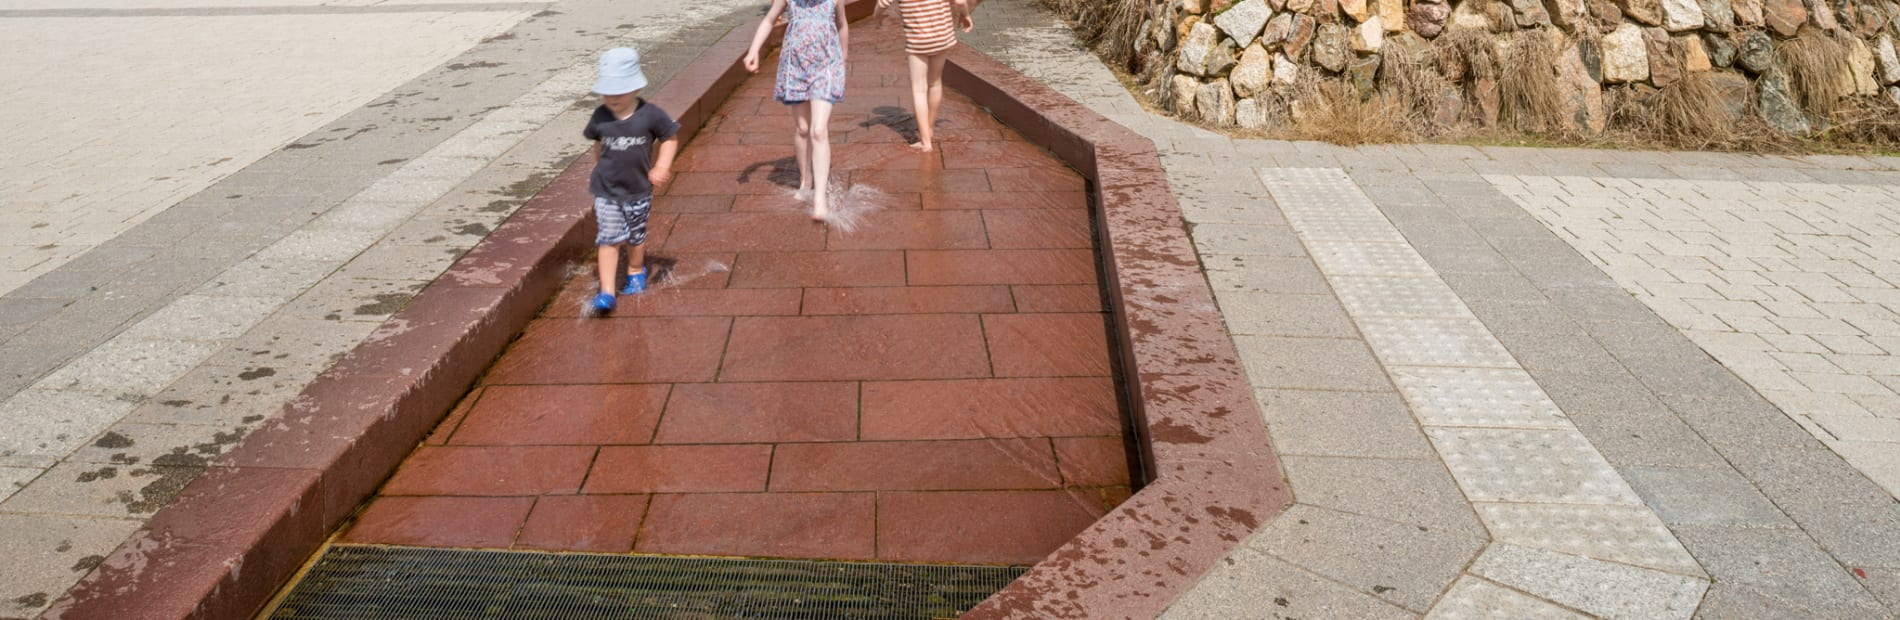 imperial red Porphyry in a water feature, children playing